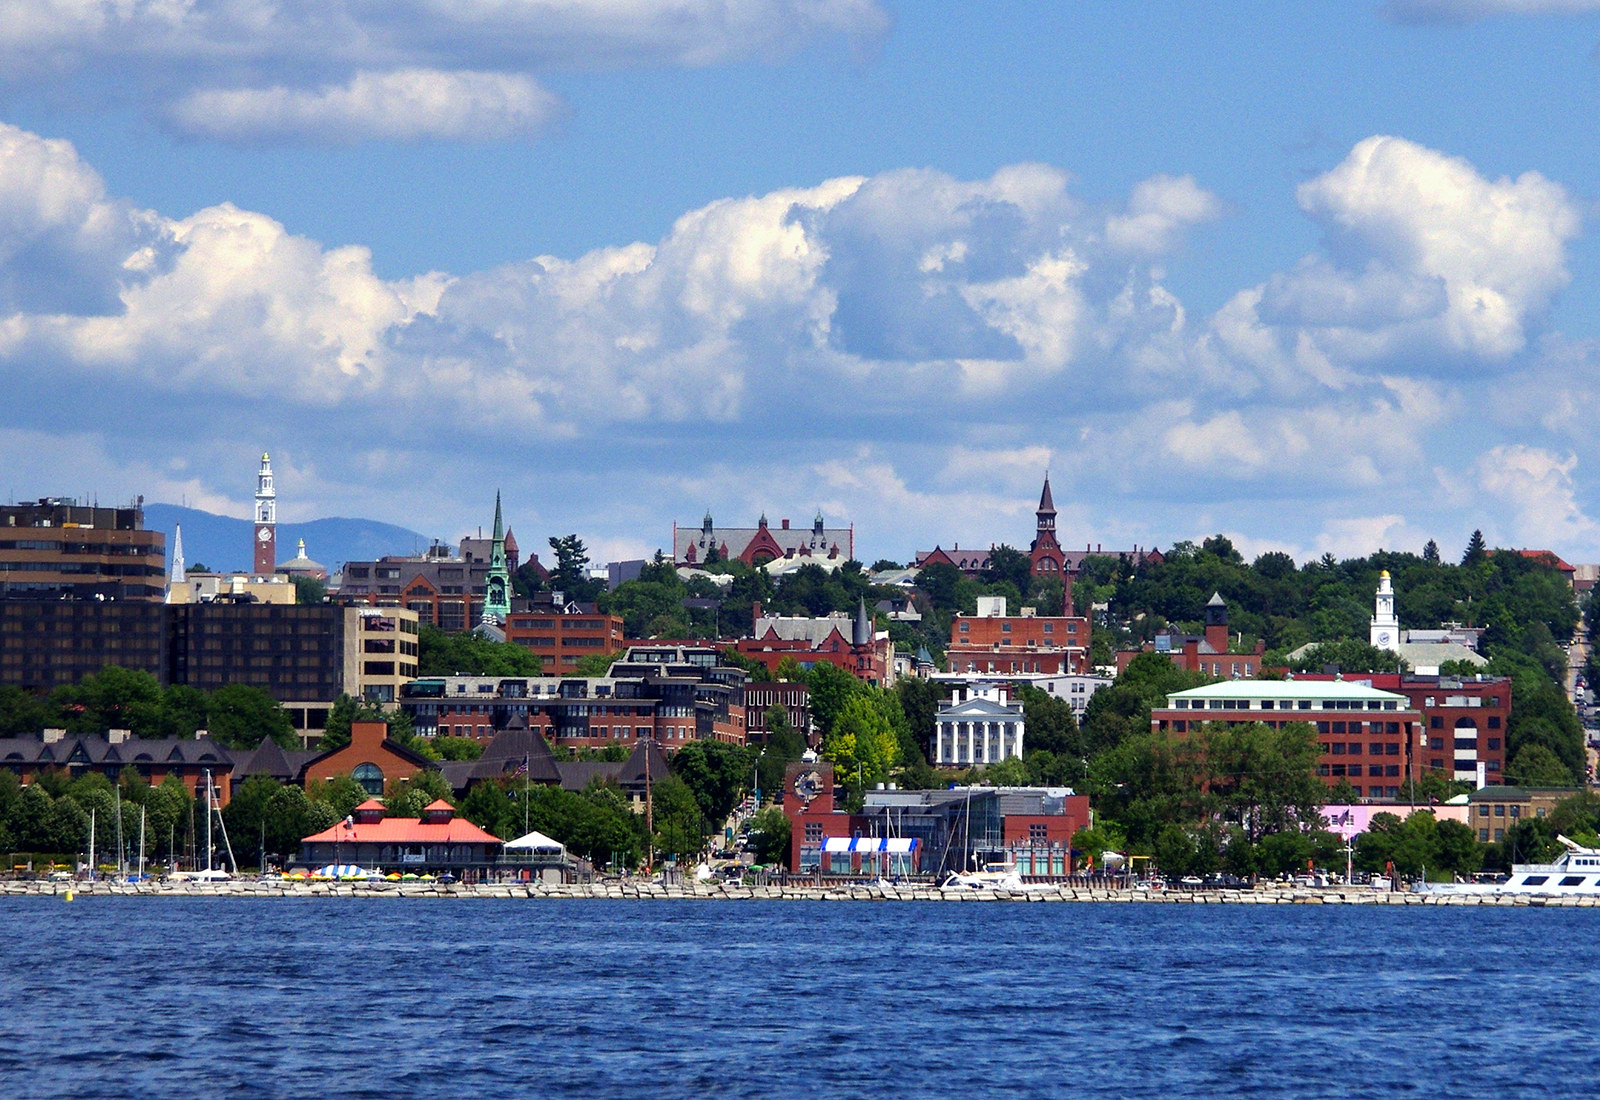 Burlington, Vermont: A view of the downtown area from Lake Champlain with blue sky and fluffy clouds. Champlain College is located in this ideal College Town.